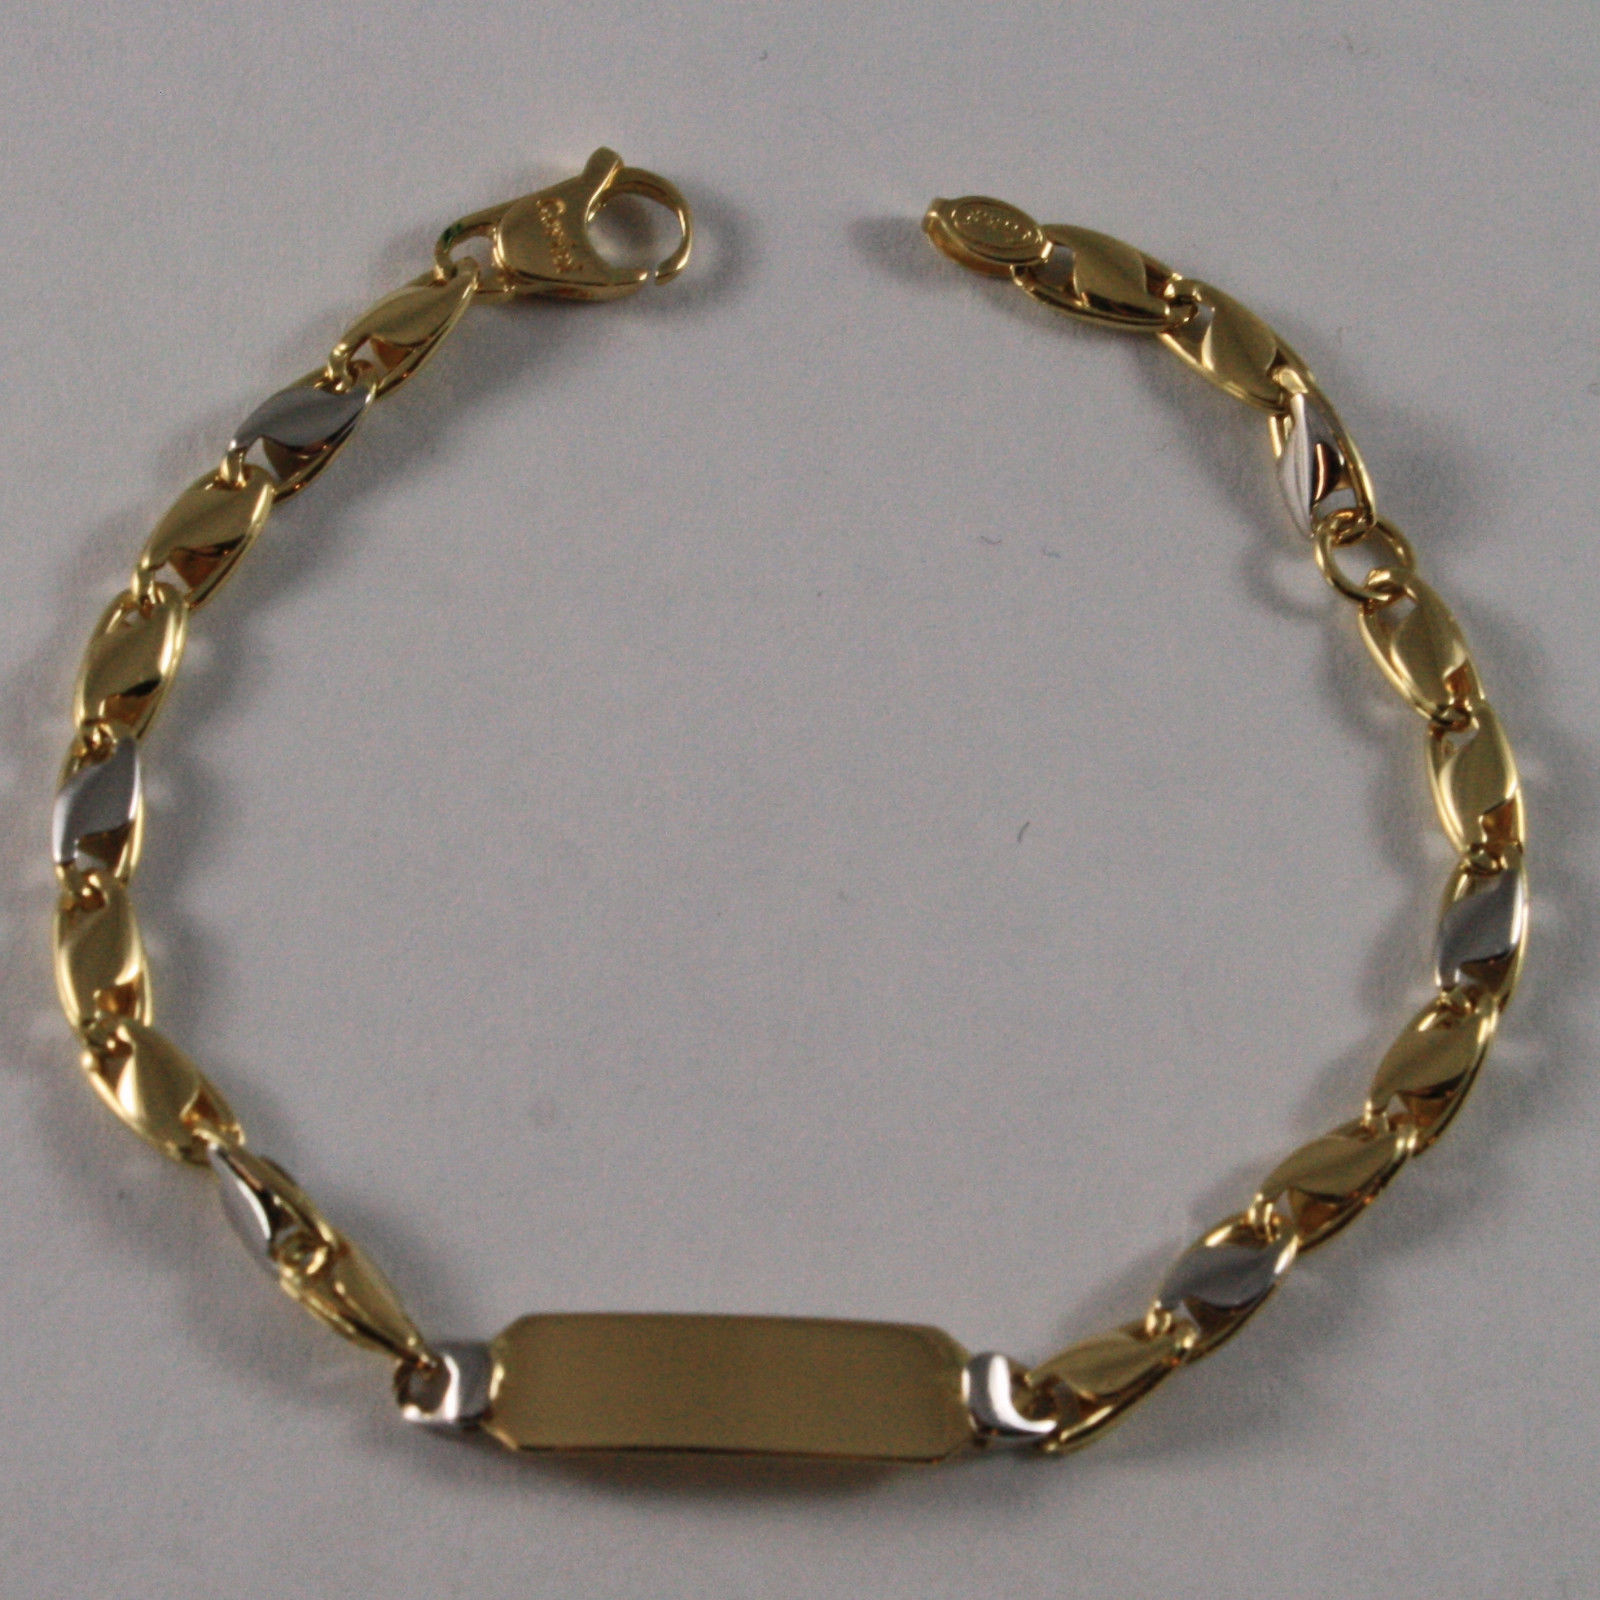 SOLID 18K WHITE & YELLOW GOLD BRACELET, 5.91 INCHES, ENGRAVING PLATE, FOR CHILD.